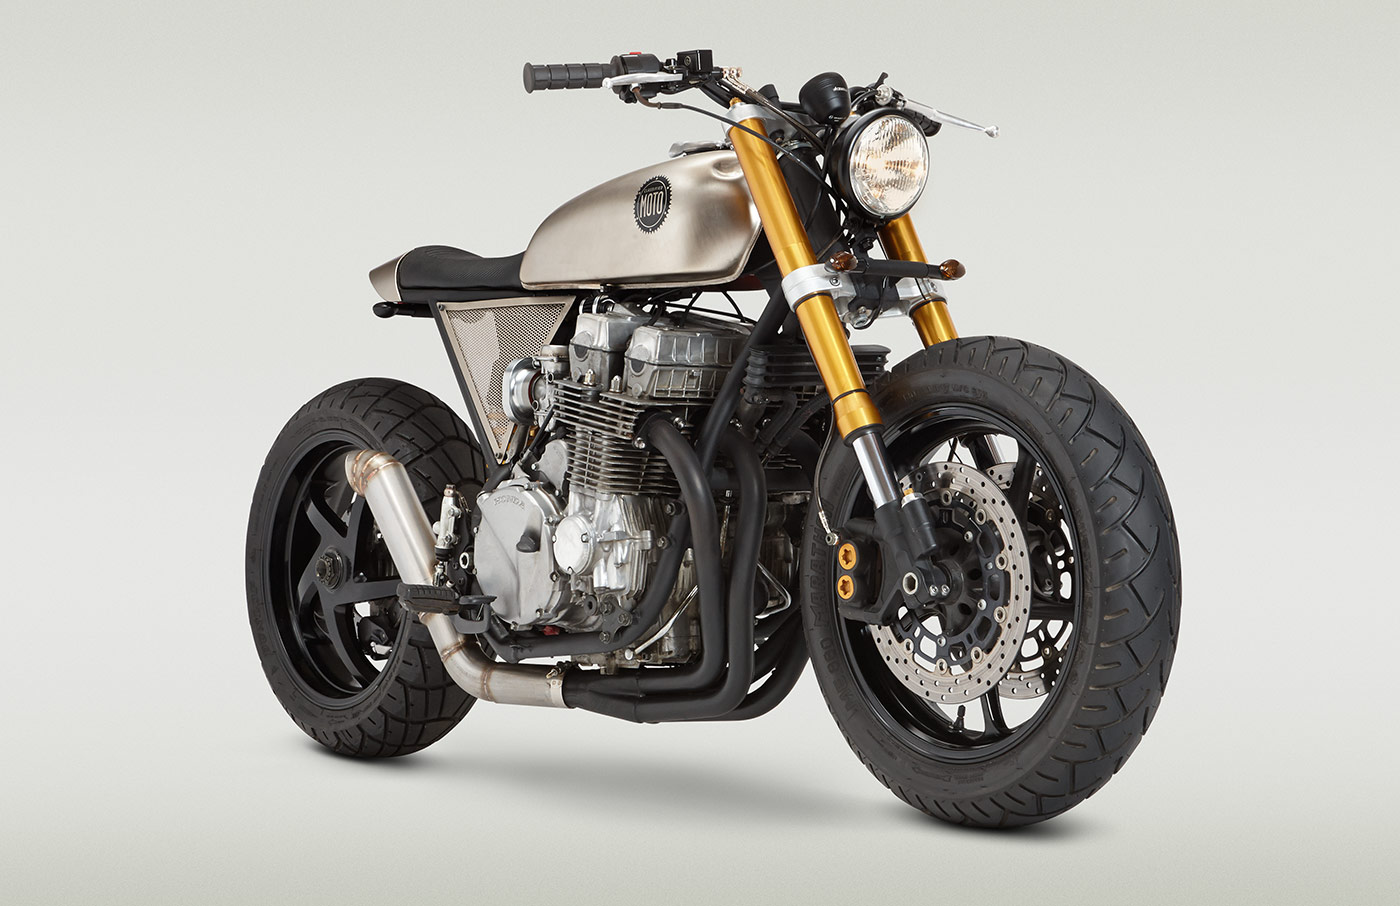 Cb750 singletracker classified moto